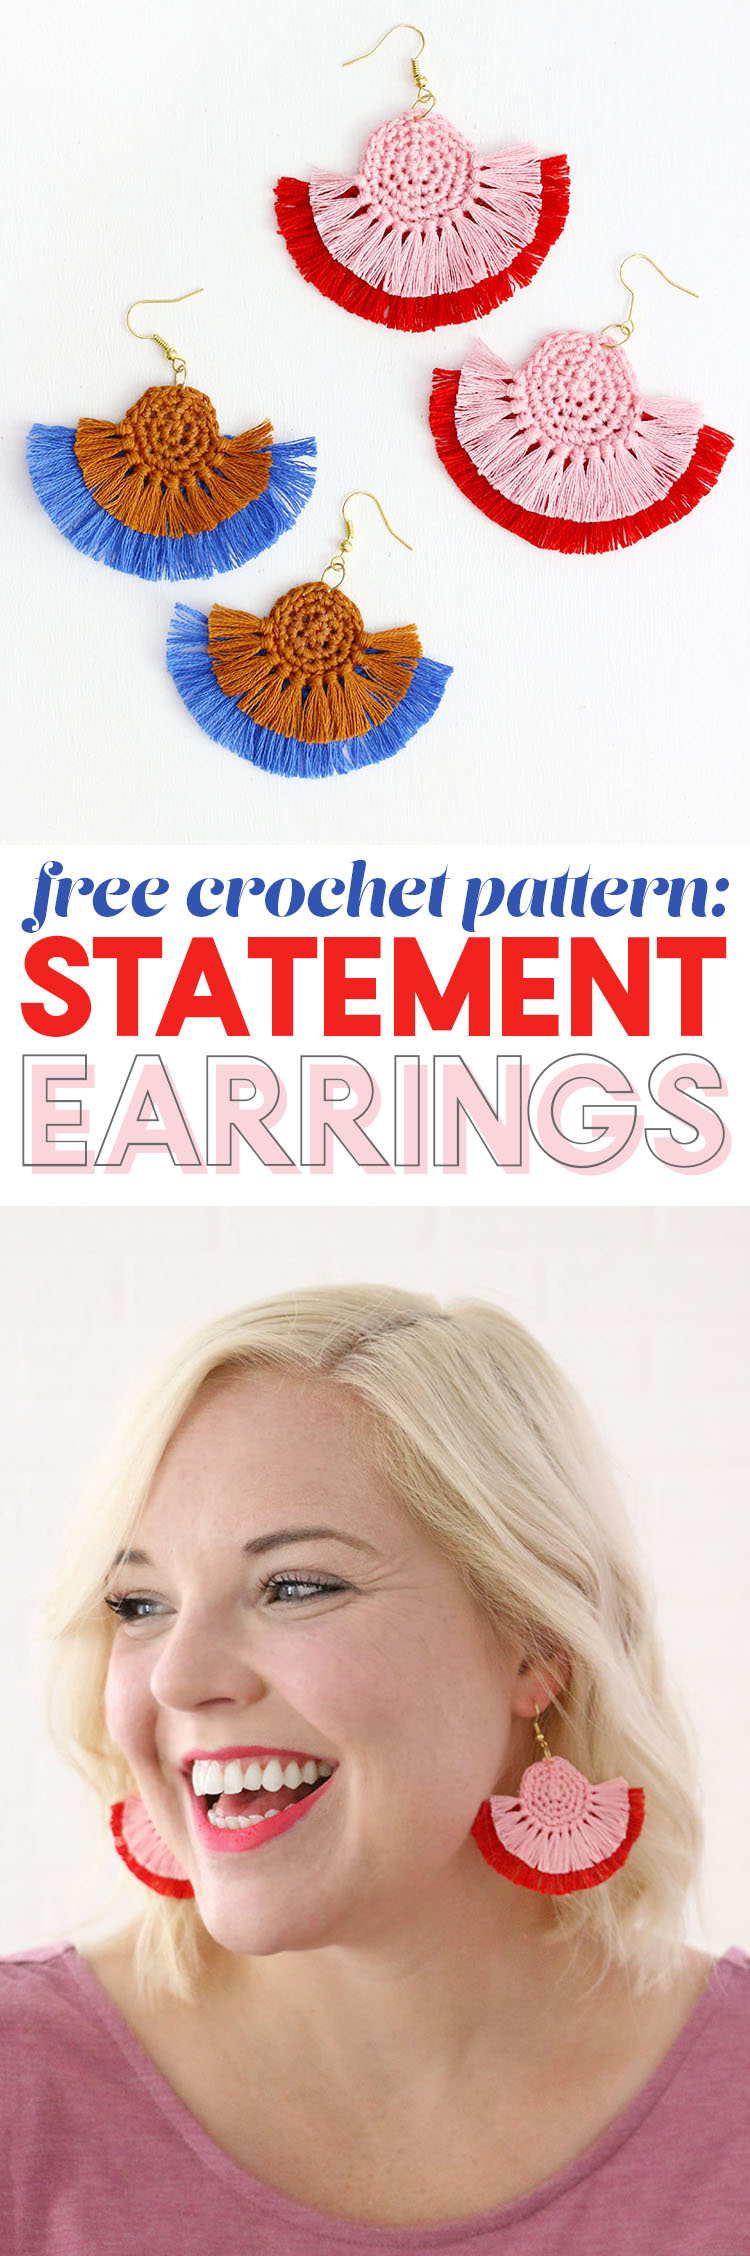 diy statement earrings - so cute! free crochet earrings pattern